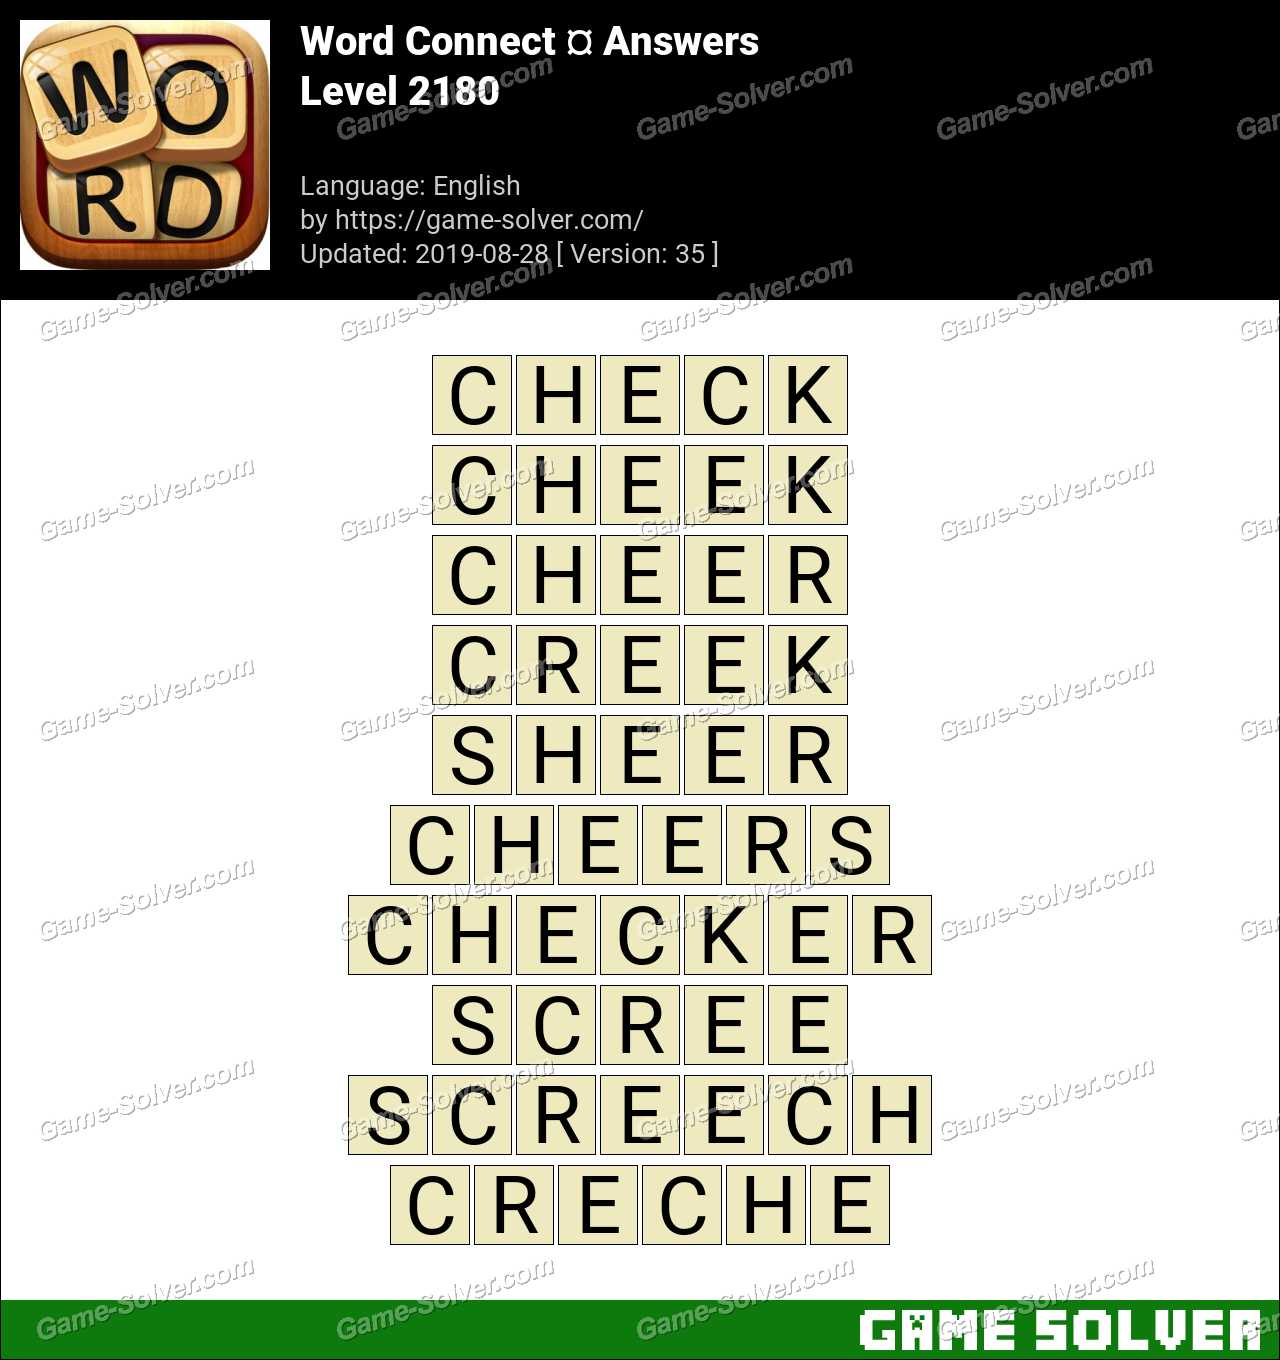 Word Connect Level 2180 Answers